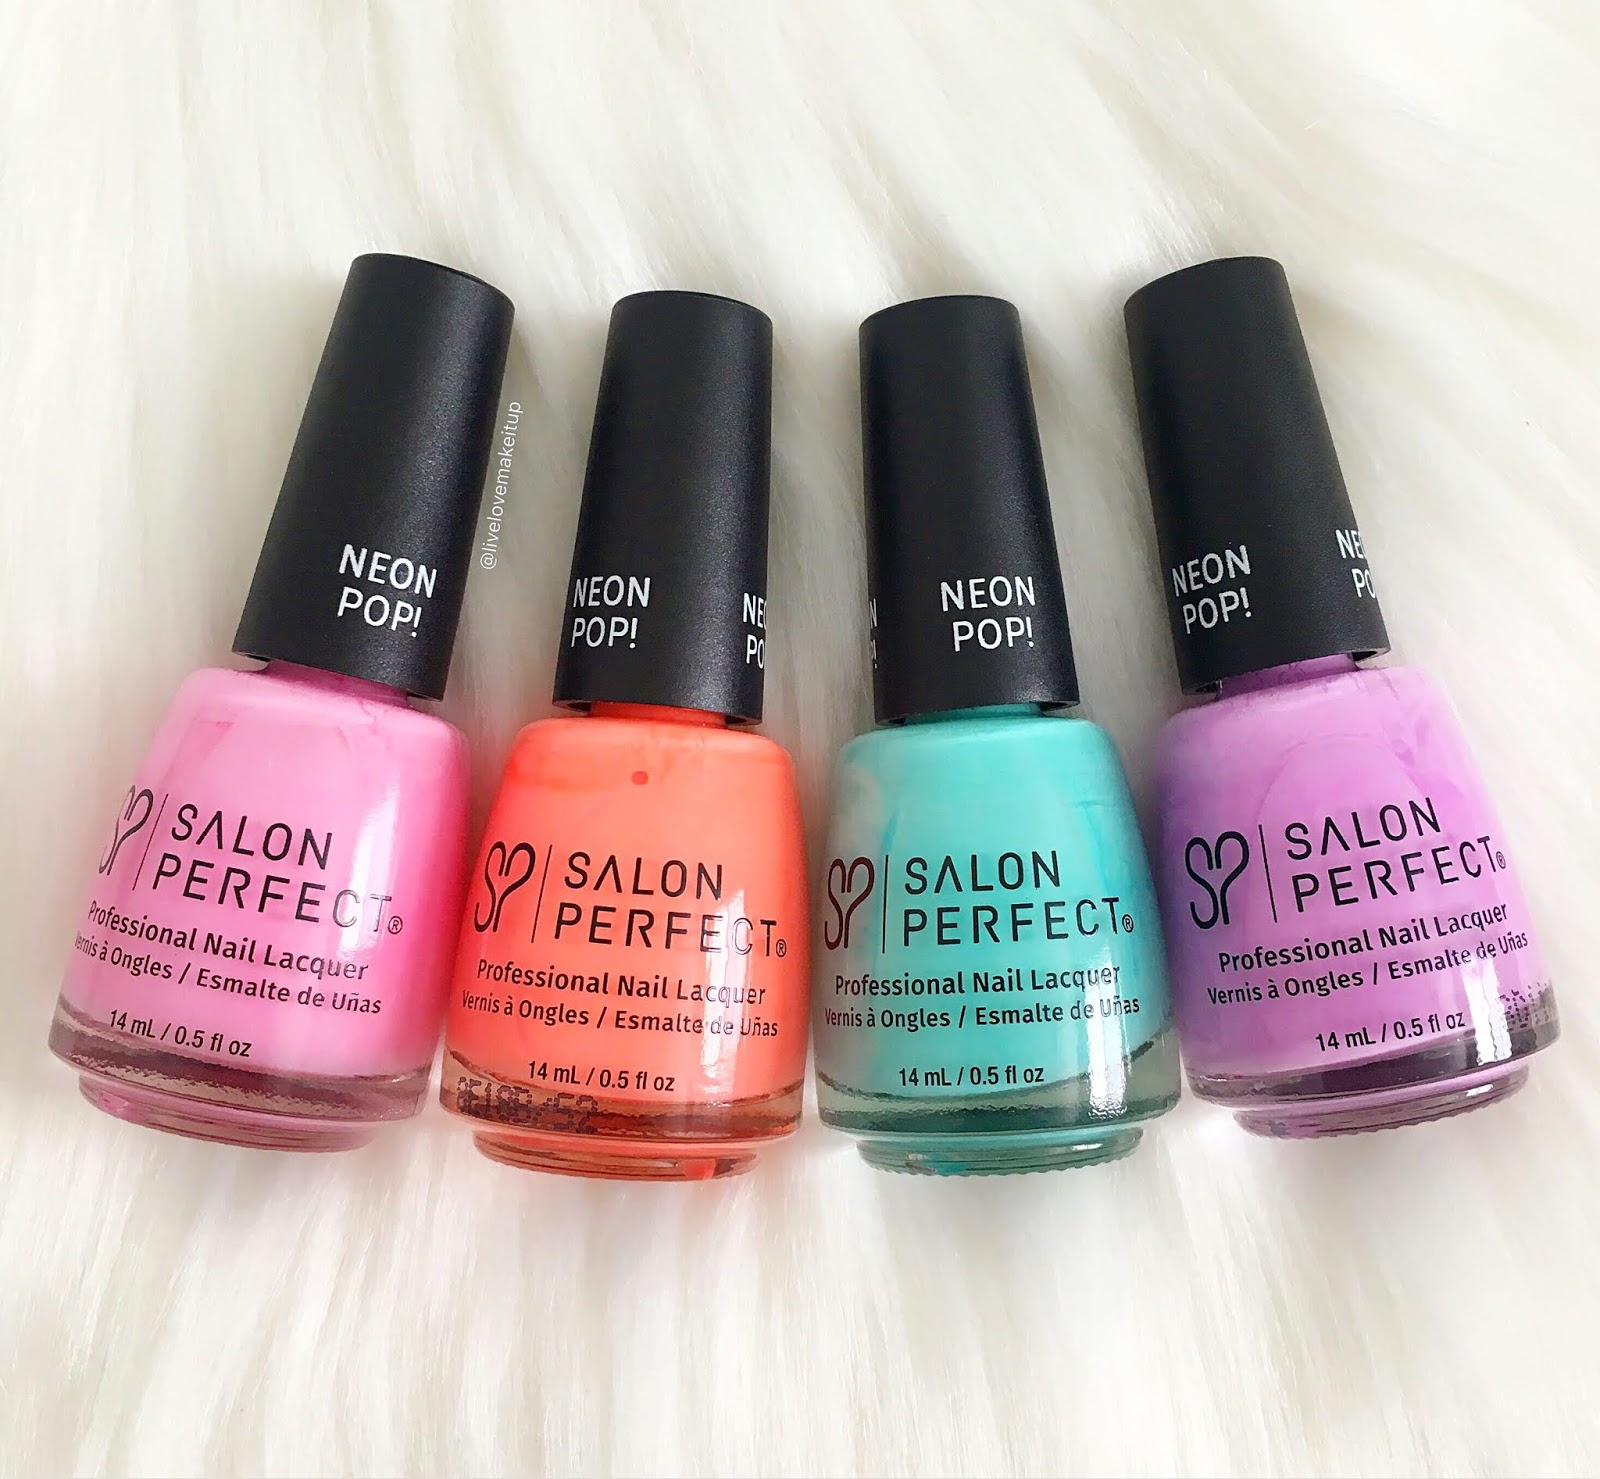 How To Glow Salon Perfect Nail Polishes Swatches Of 4 Shades